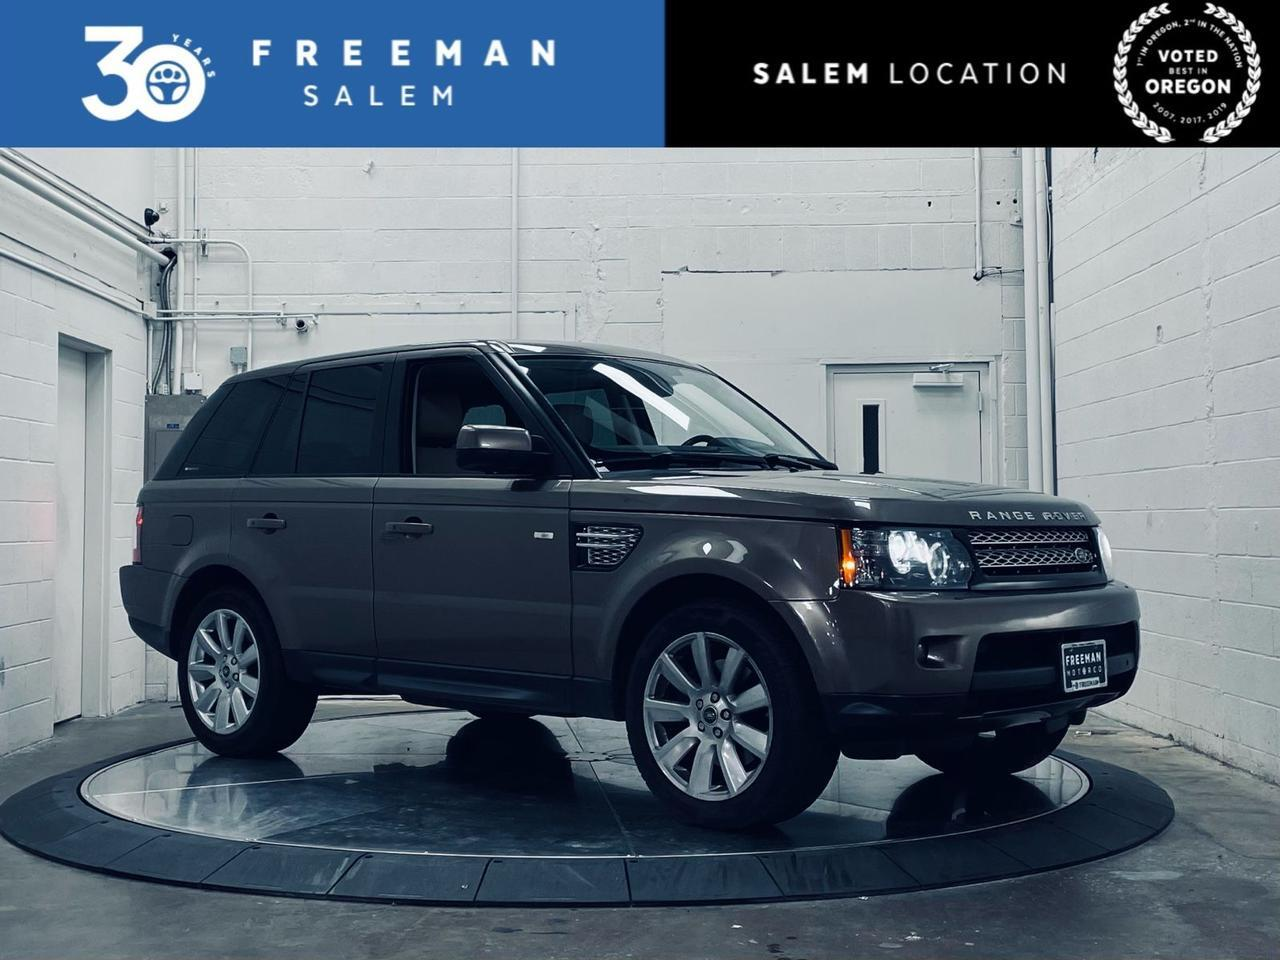 2013 Land Rover Range Rover Sport HSE LUX Vision Assist Package Salem OR